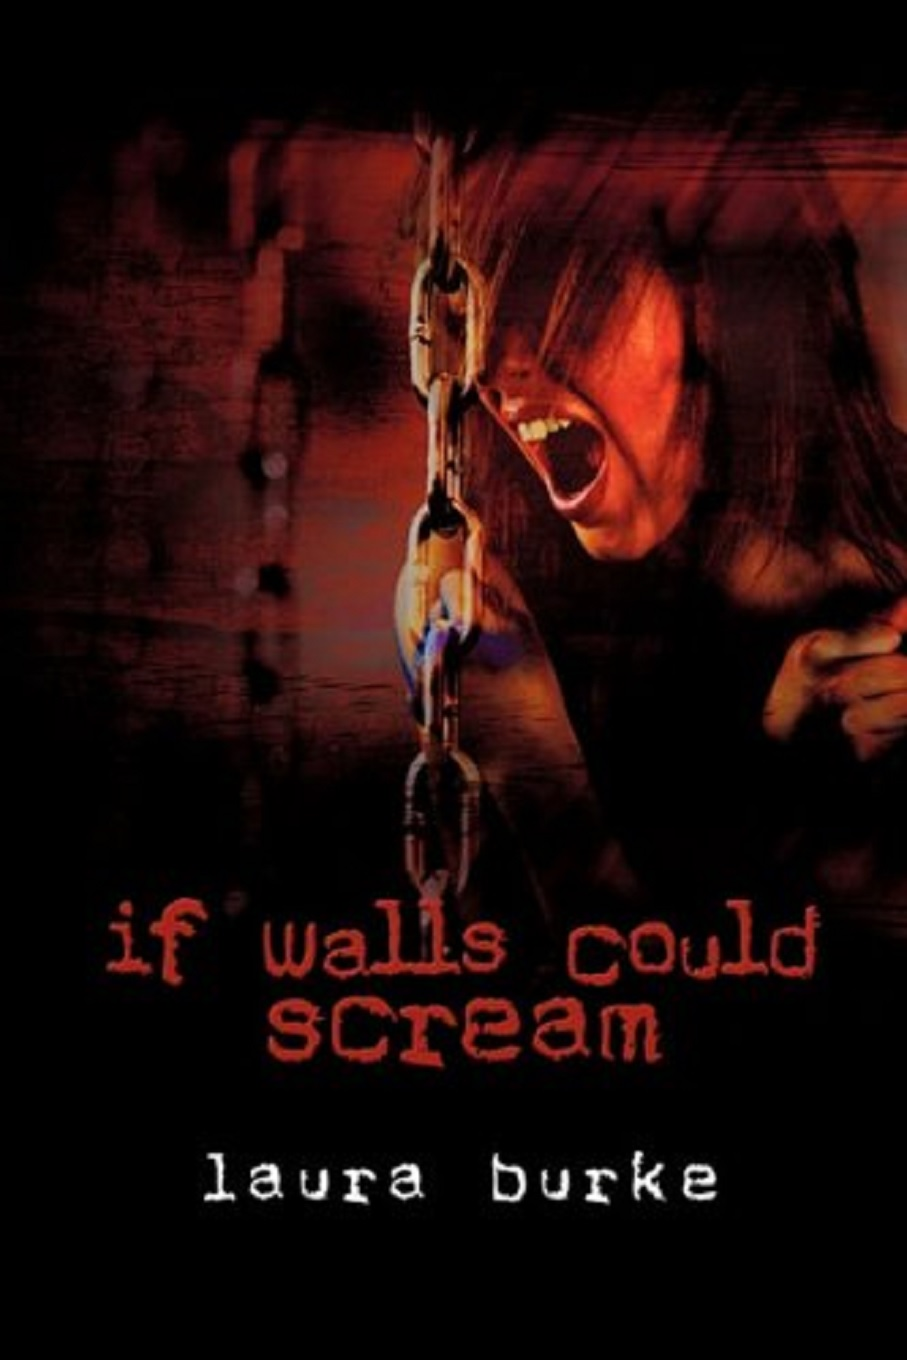 http://authorlauraburke.blogspot.com/p/if-walls-could-scream_7.html